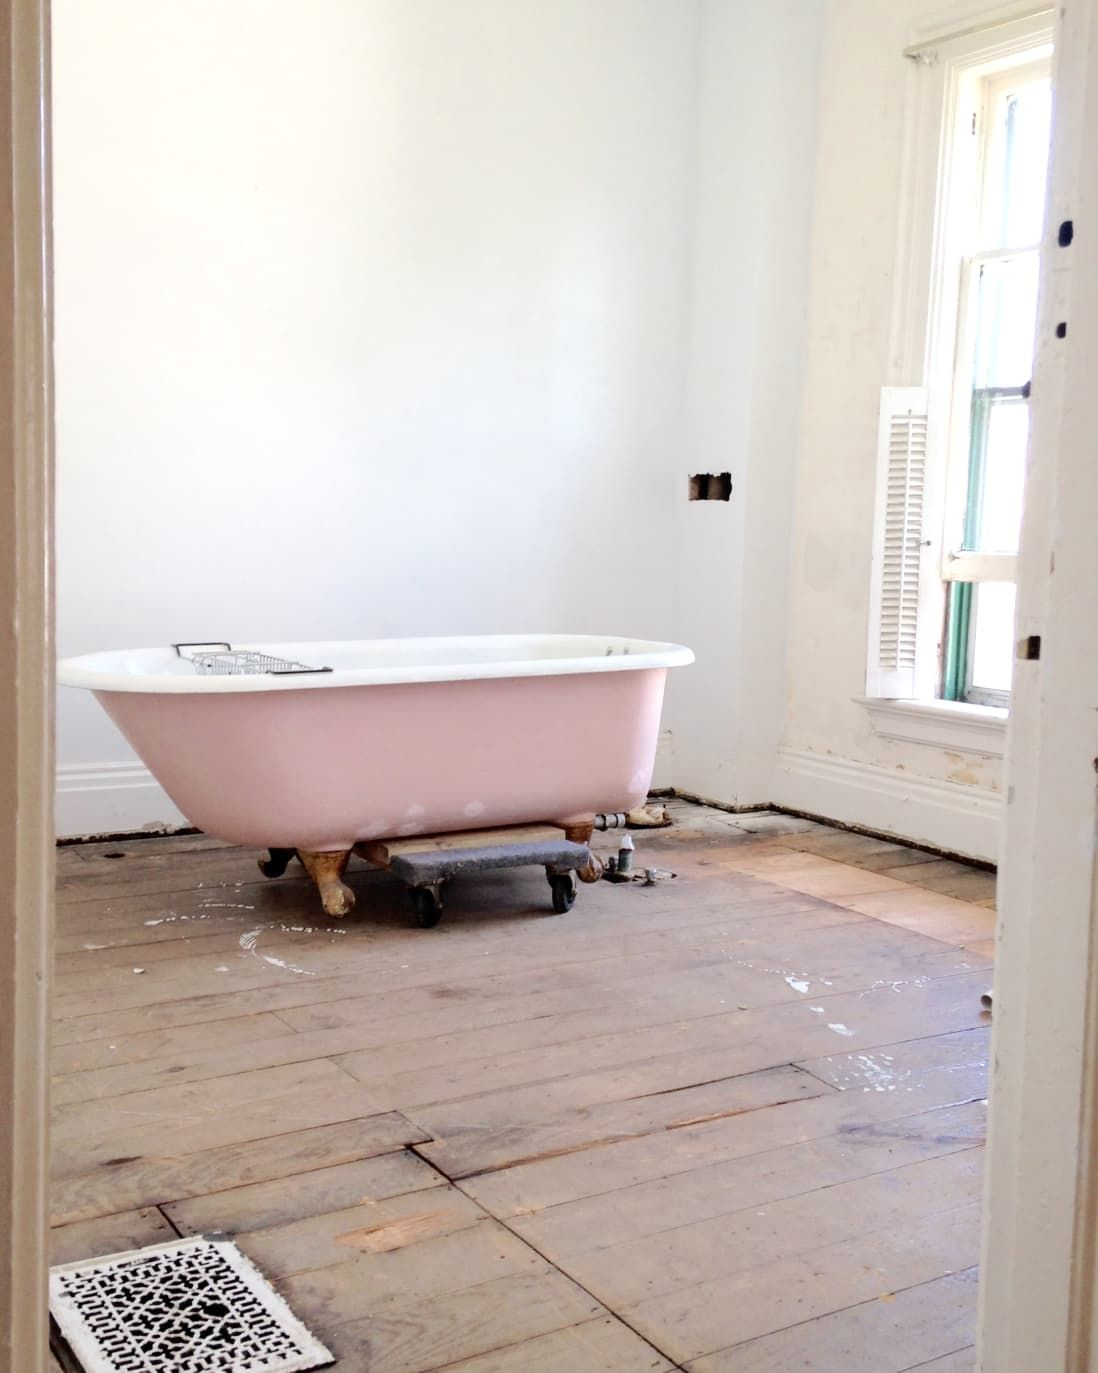 How I Moved Refinished This Clawfoot Tub And Lived To Tell The Tale Clawfoot Tub Clawfoot Tub Bathroom Clawfoot Tub Shower